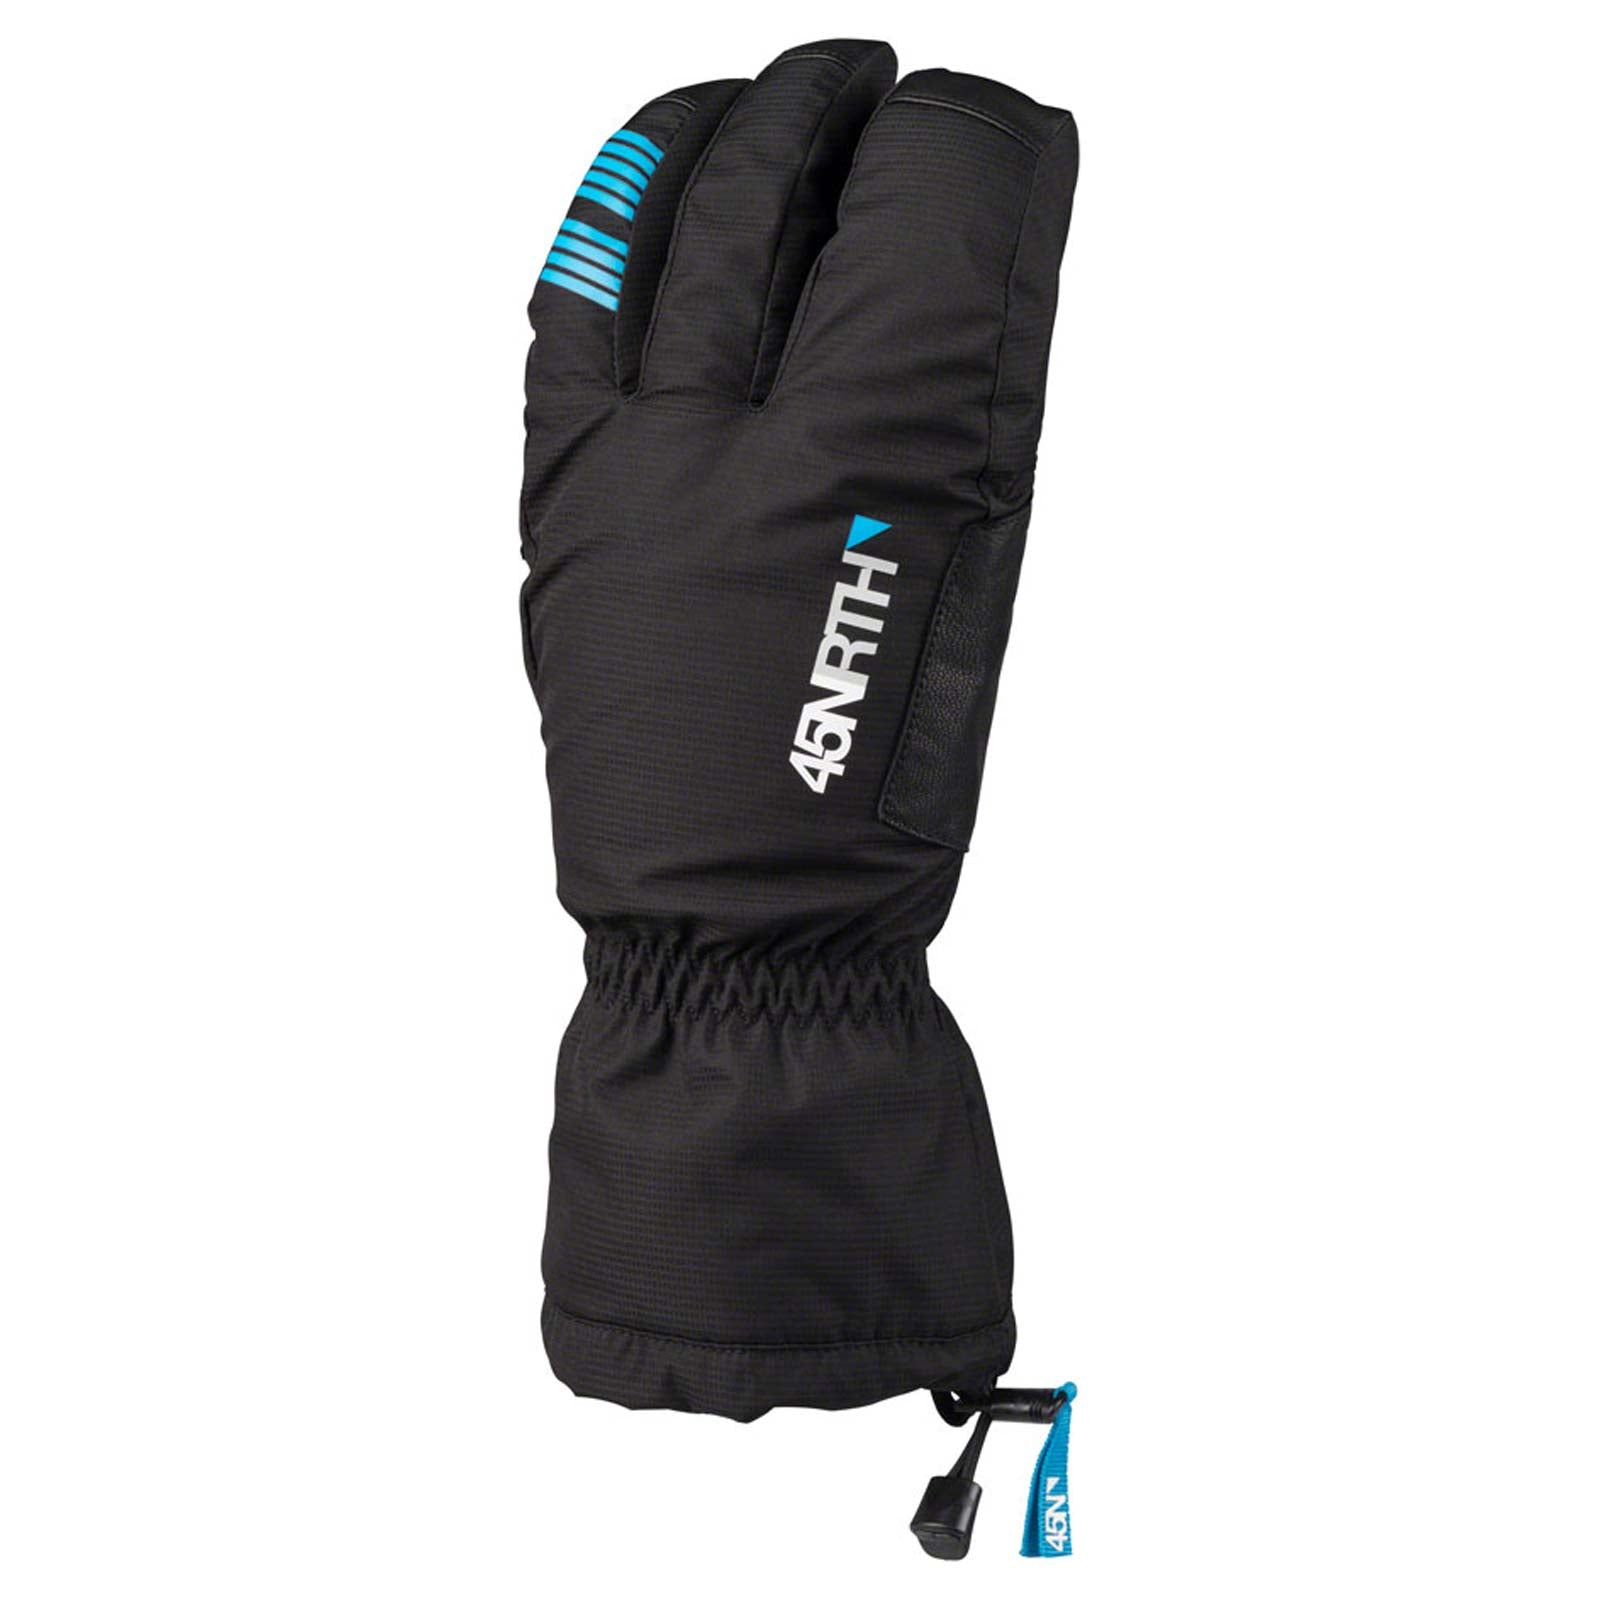 45NRTH Sturmfist 4 Finger Gloves - Black - Full Finger